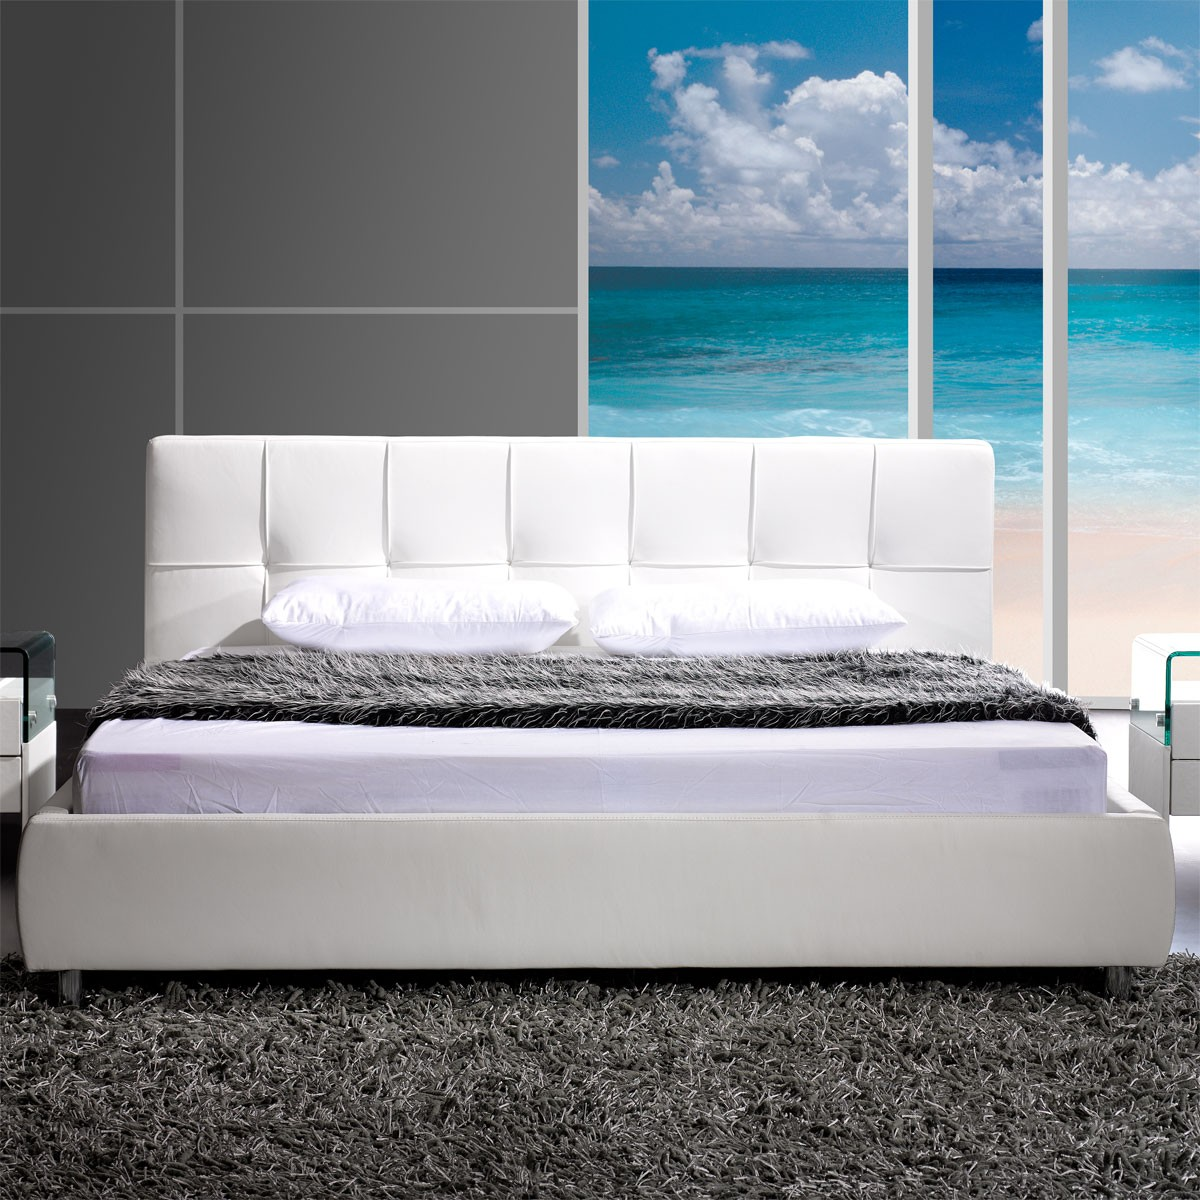 polsterbett bett futonbett zarah 200 x 200 cm in kunstleder wei ebay. Black Bedroom Furniture Sets. Home Design Ideas